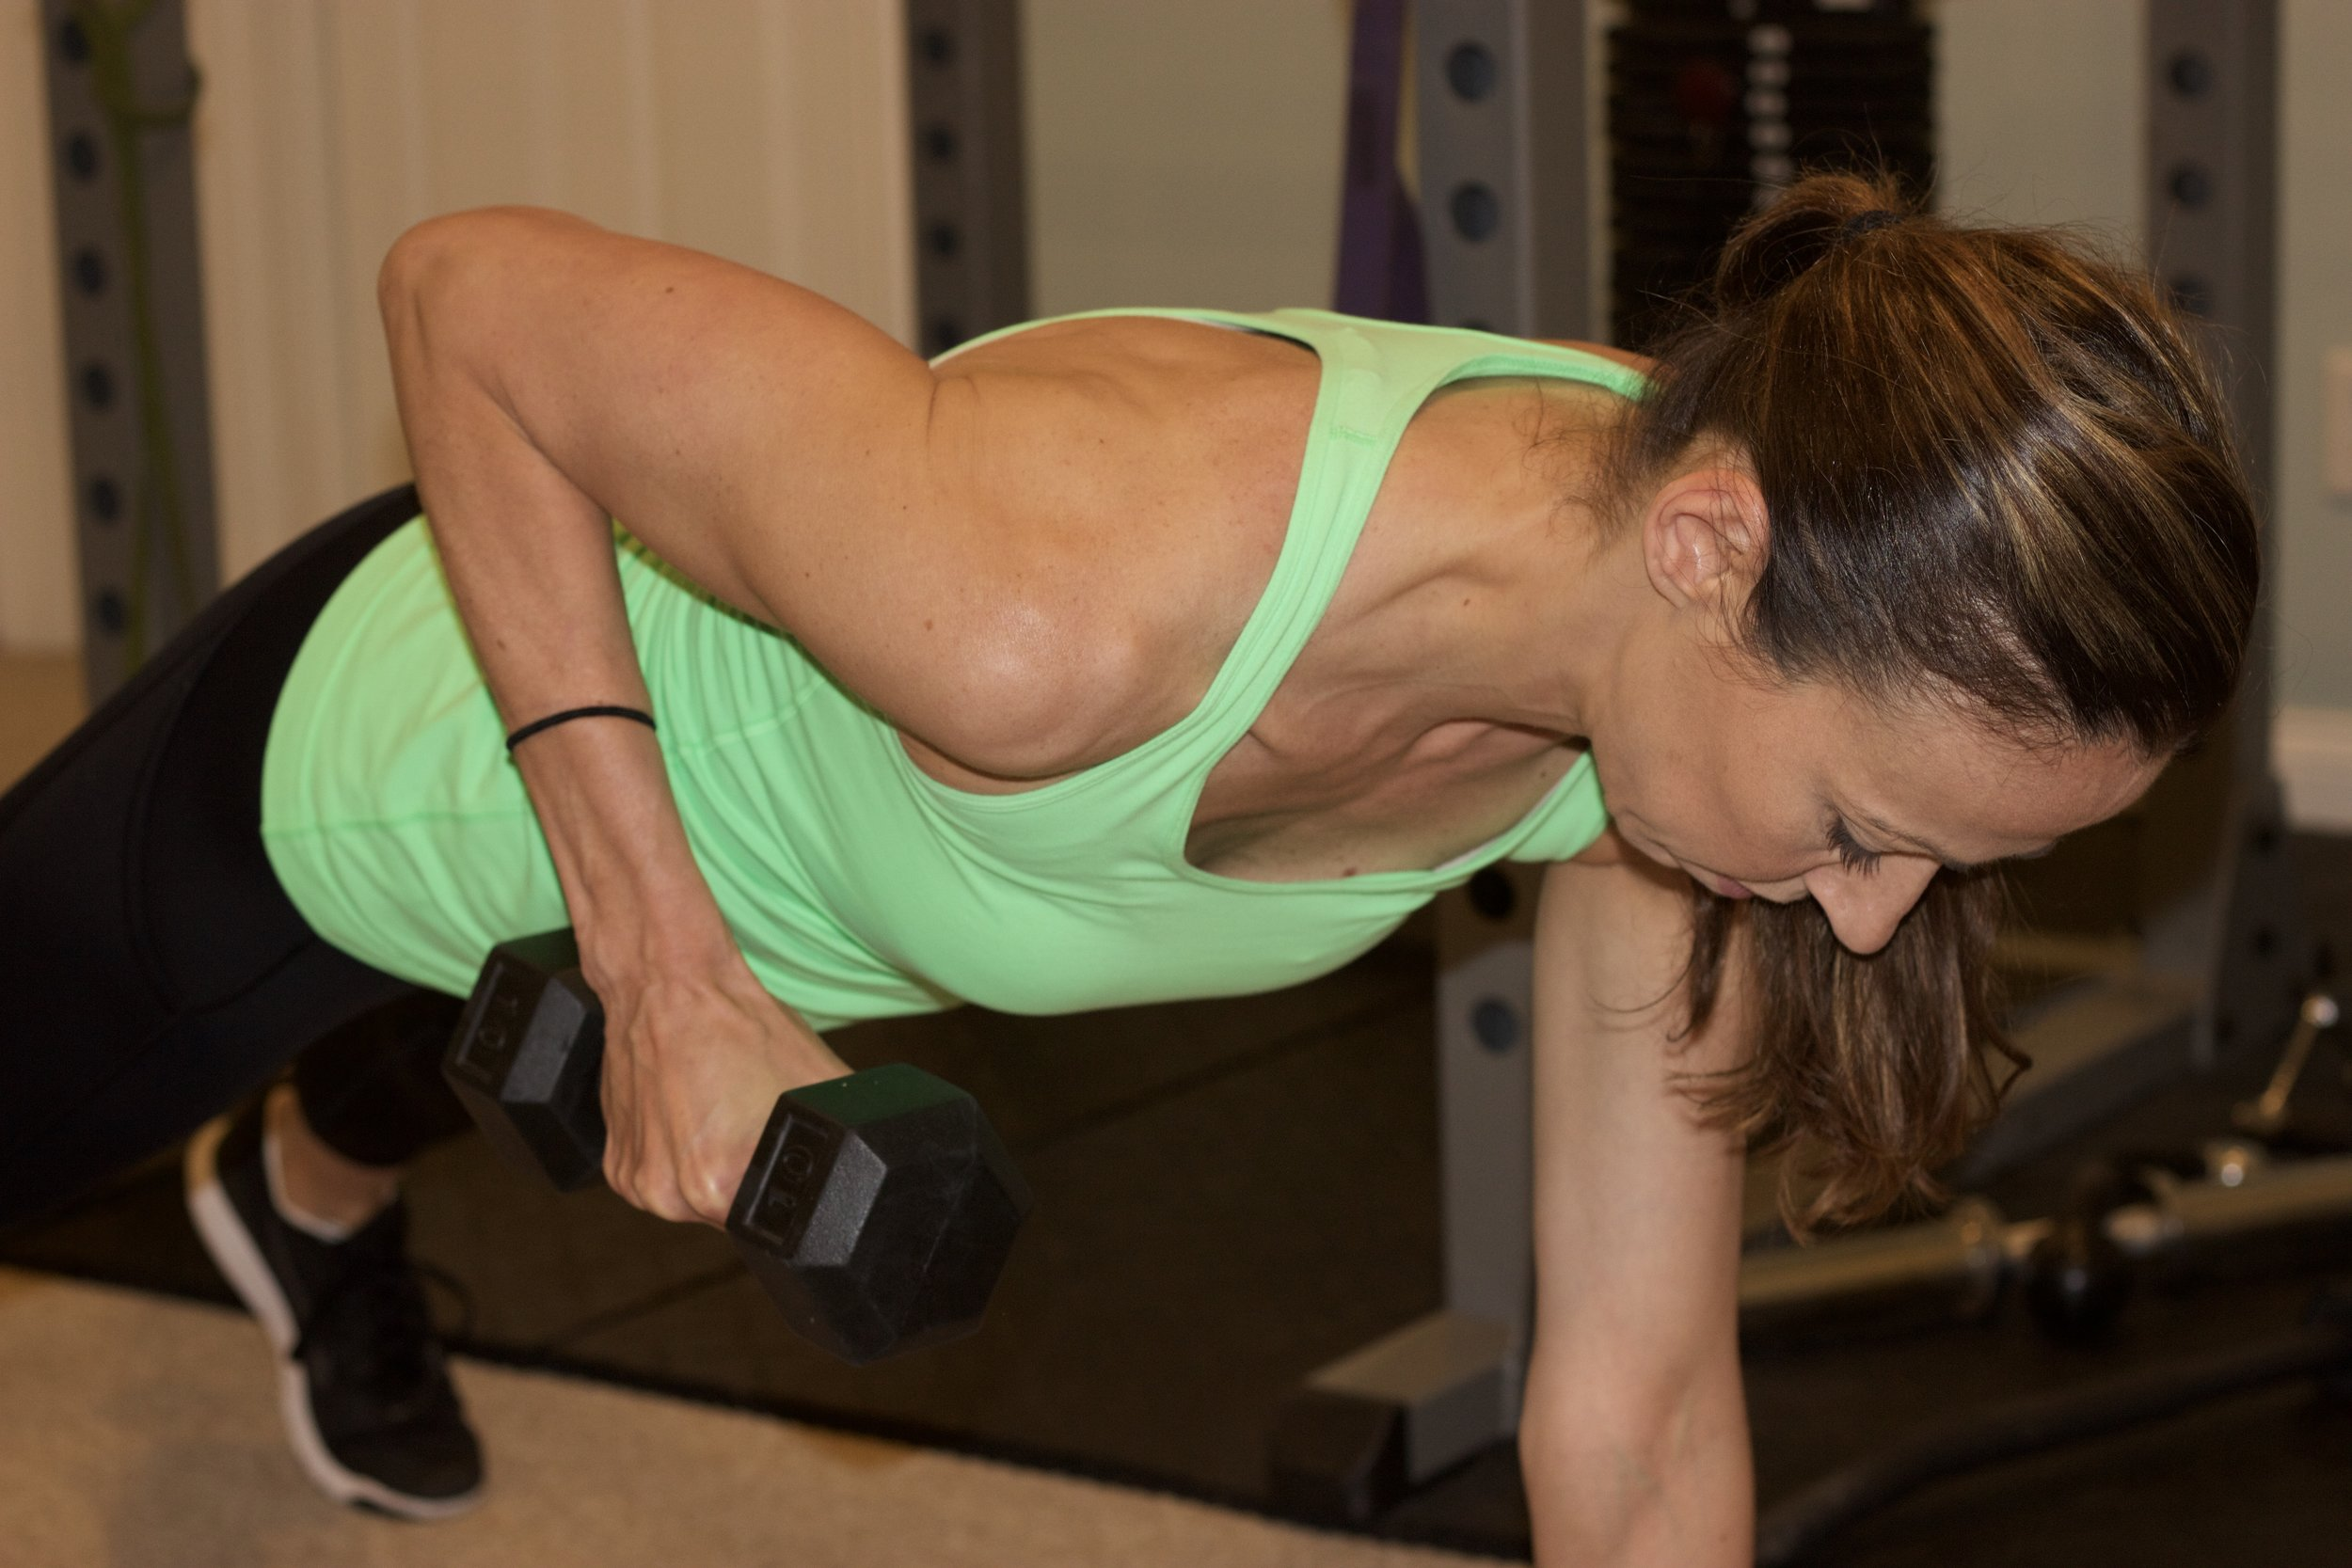 Find some other benefits of weight lifting - Read More Here